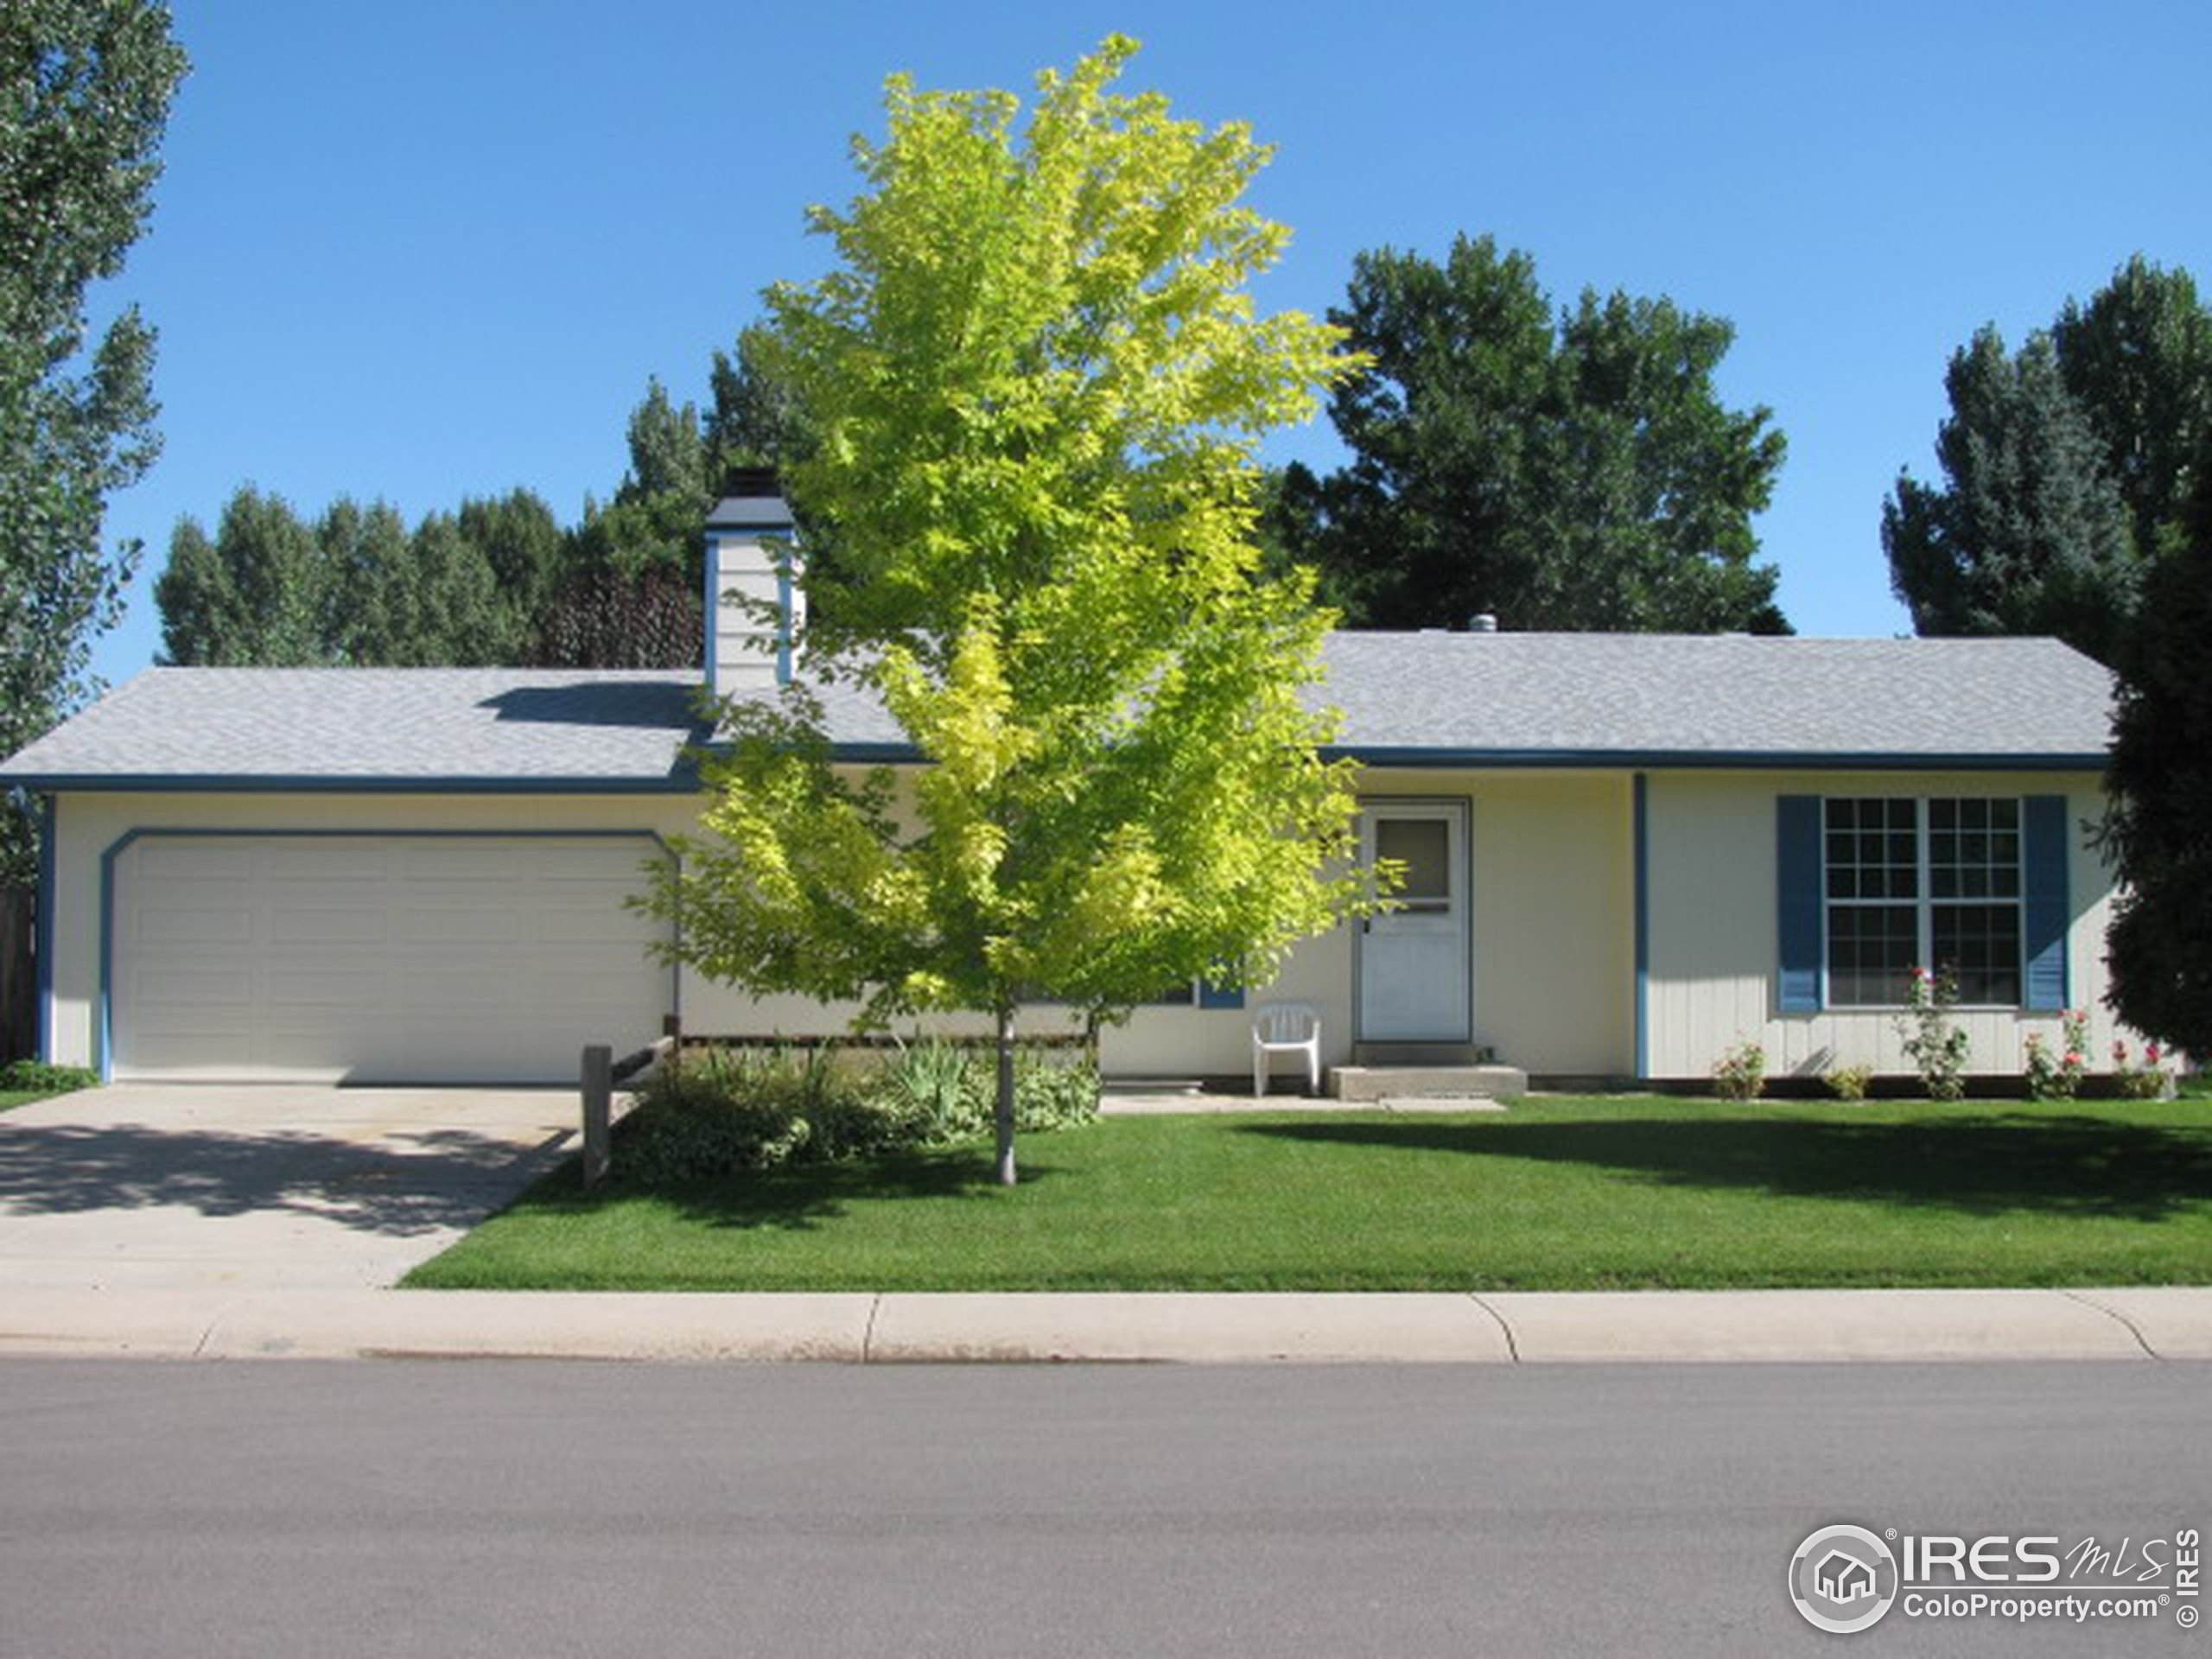 2107 74th Ave Ct, Greeley, CO 80634 (#907309) :: The Brokerage Group